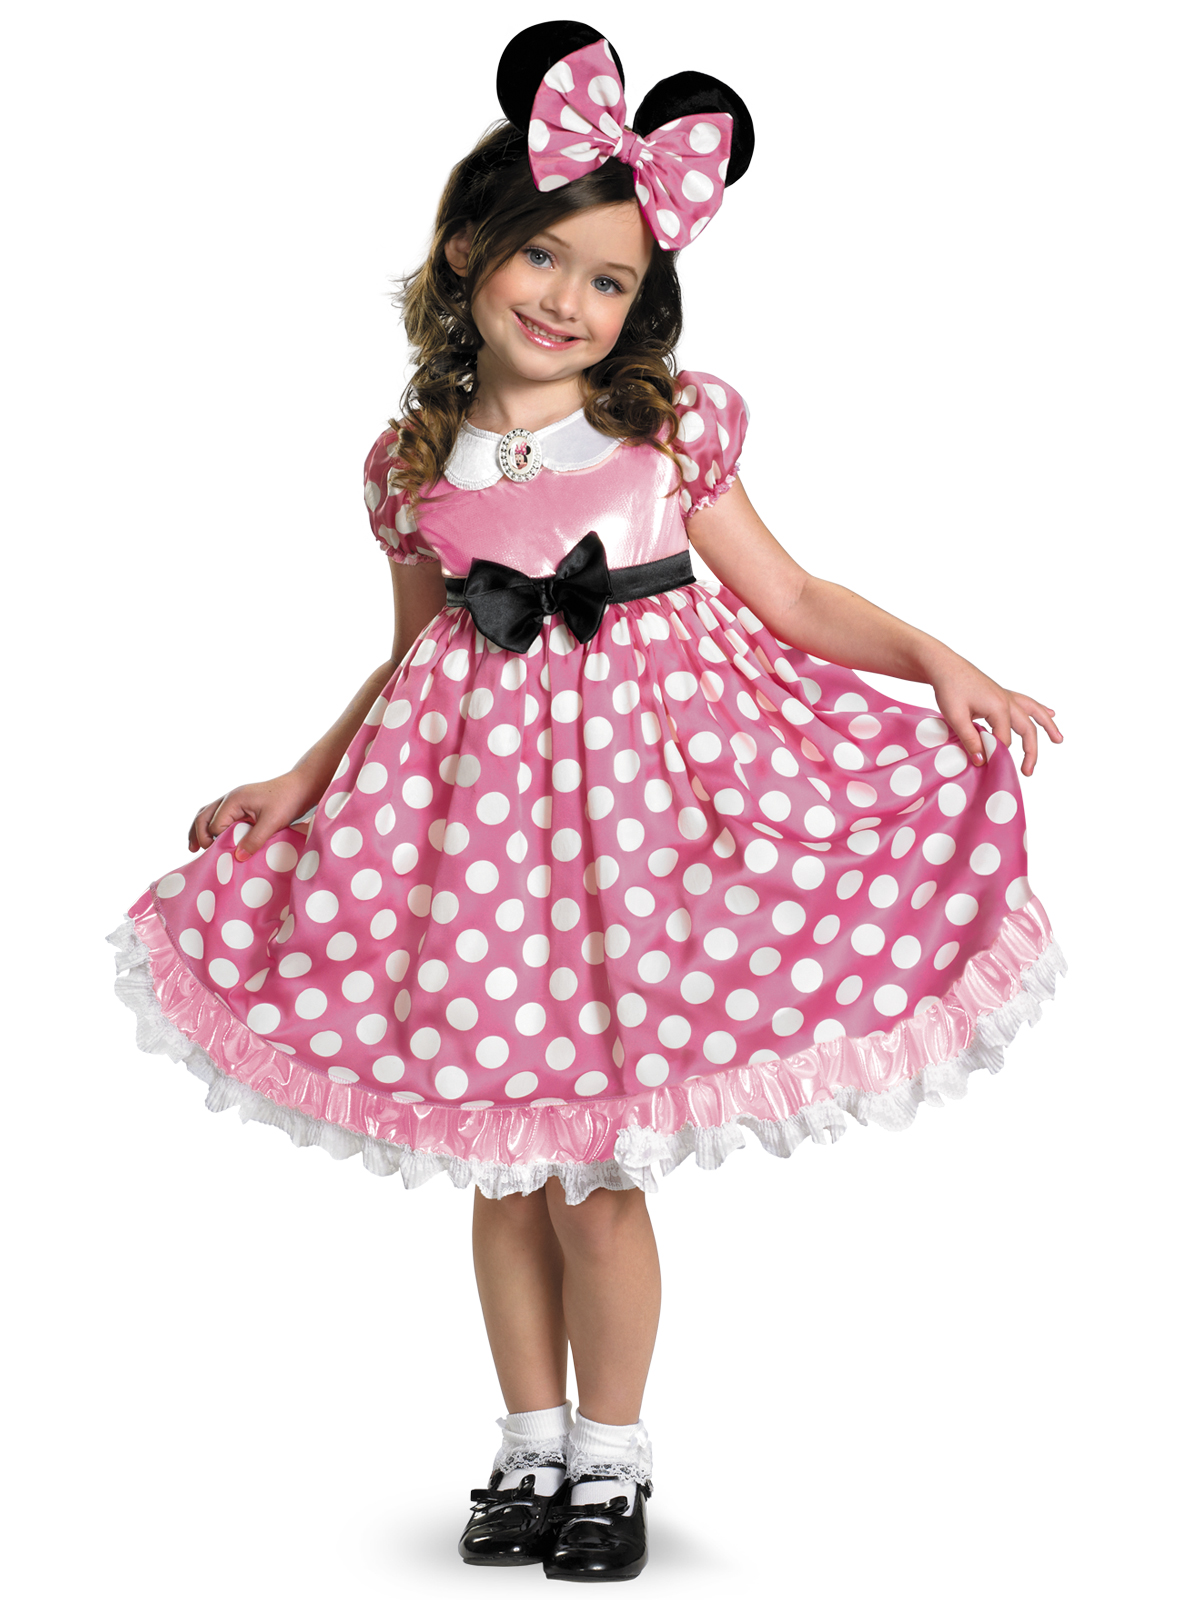 Clubhouse Minnie Mouse Pink Pink Minnie Mouse Glow in